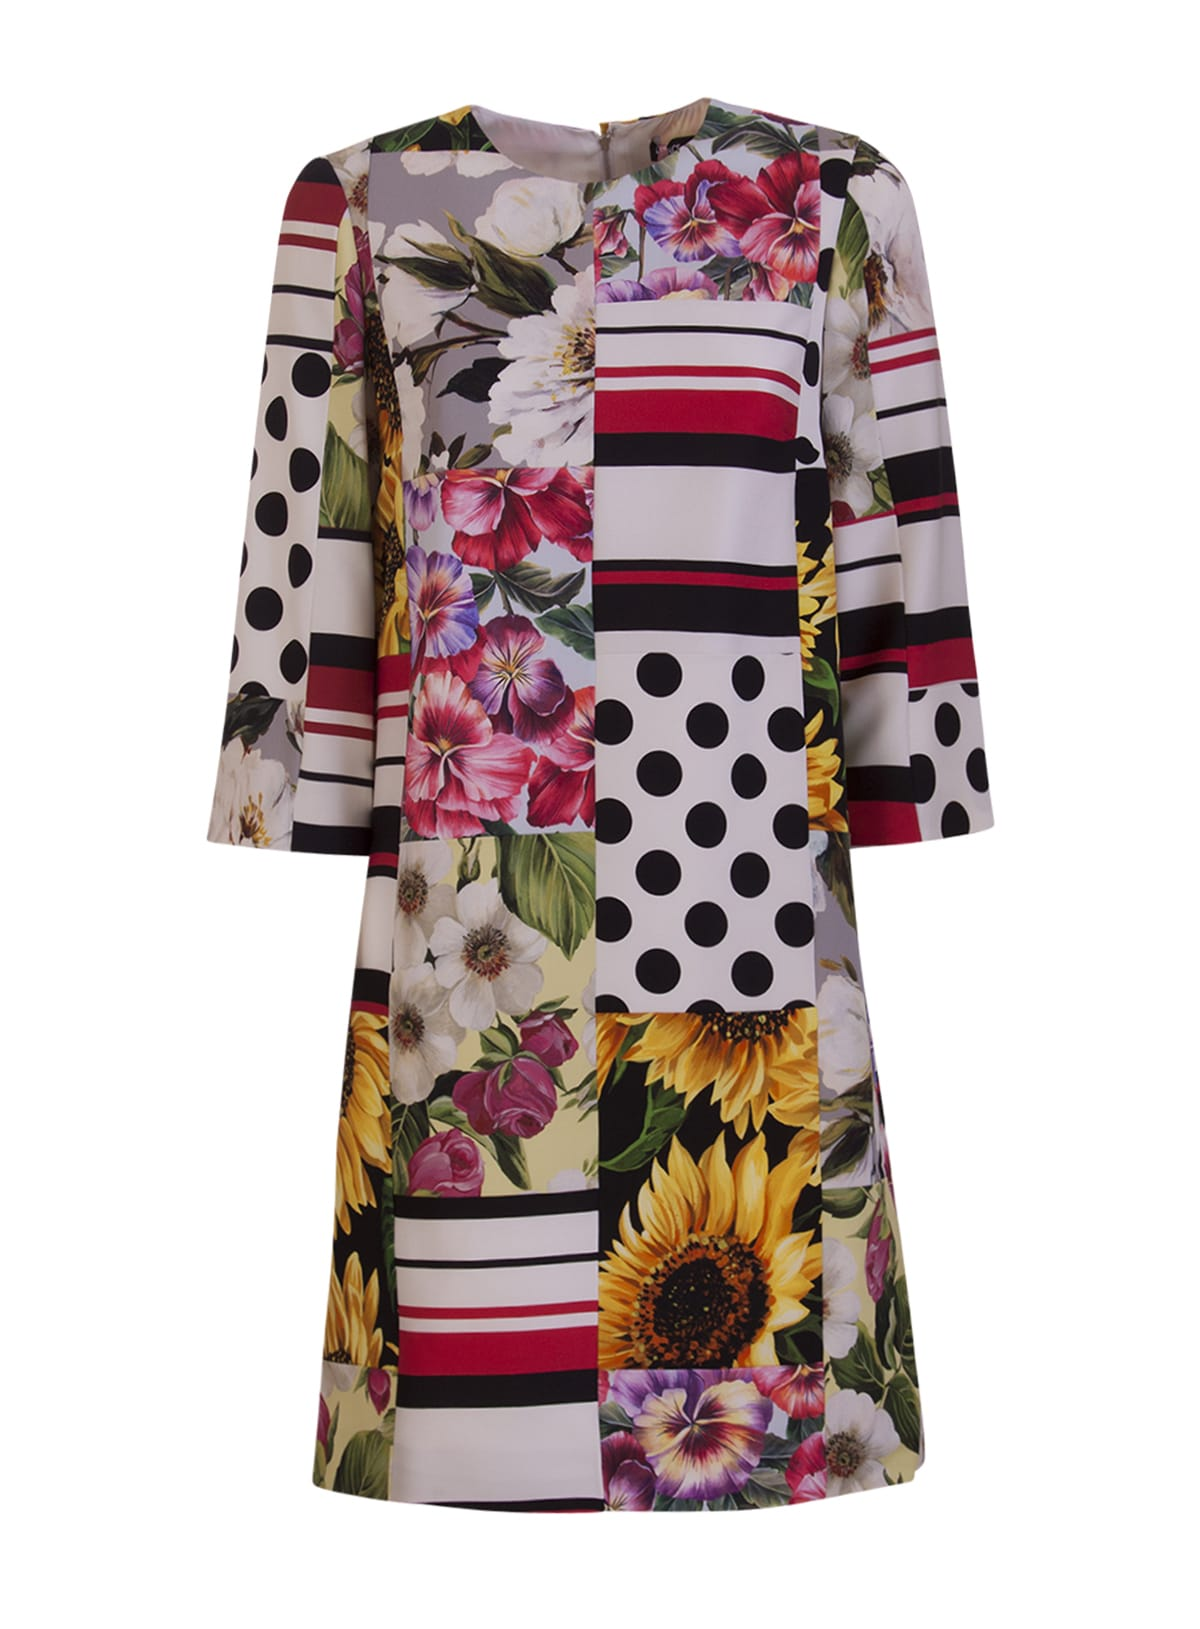 Dolce & Gabbana Charmeuse Patchwork Dress